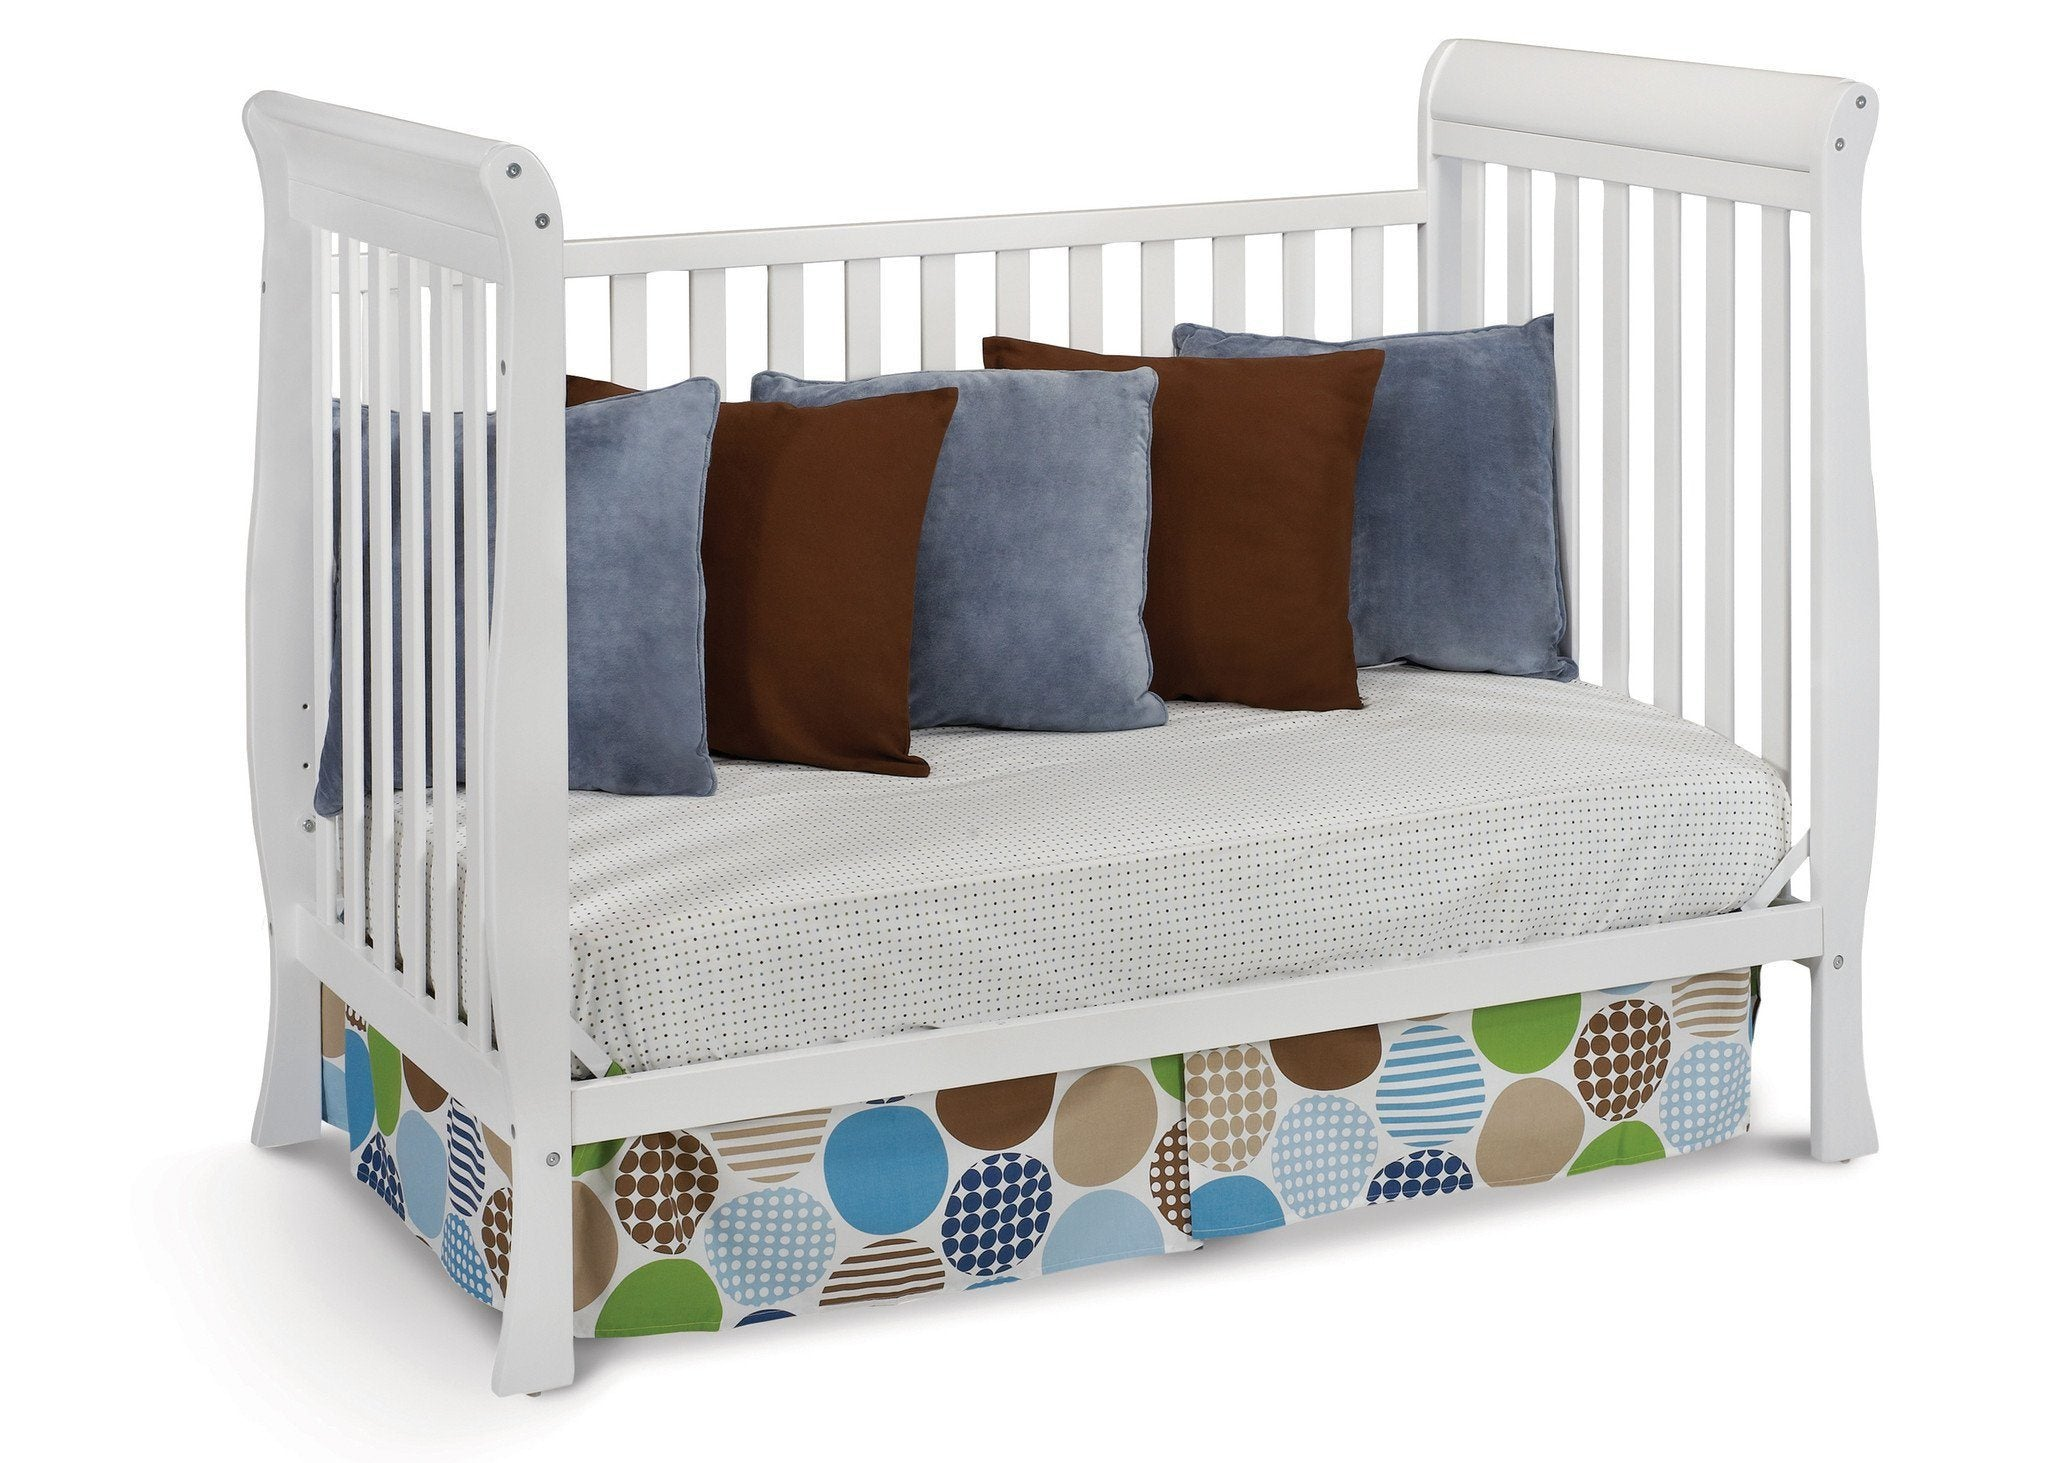 Delta Children White (100) Winter Park 3-in-1 Crib, Day Bed Conversion a4a